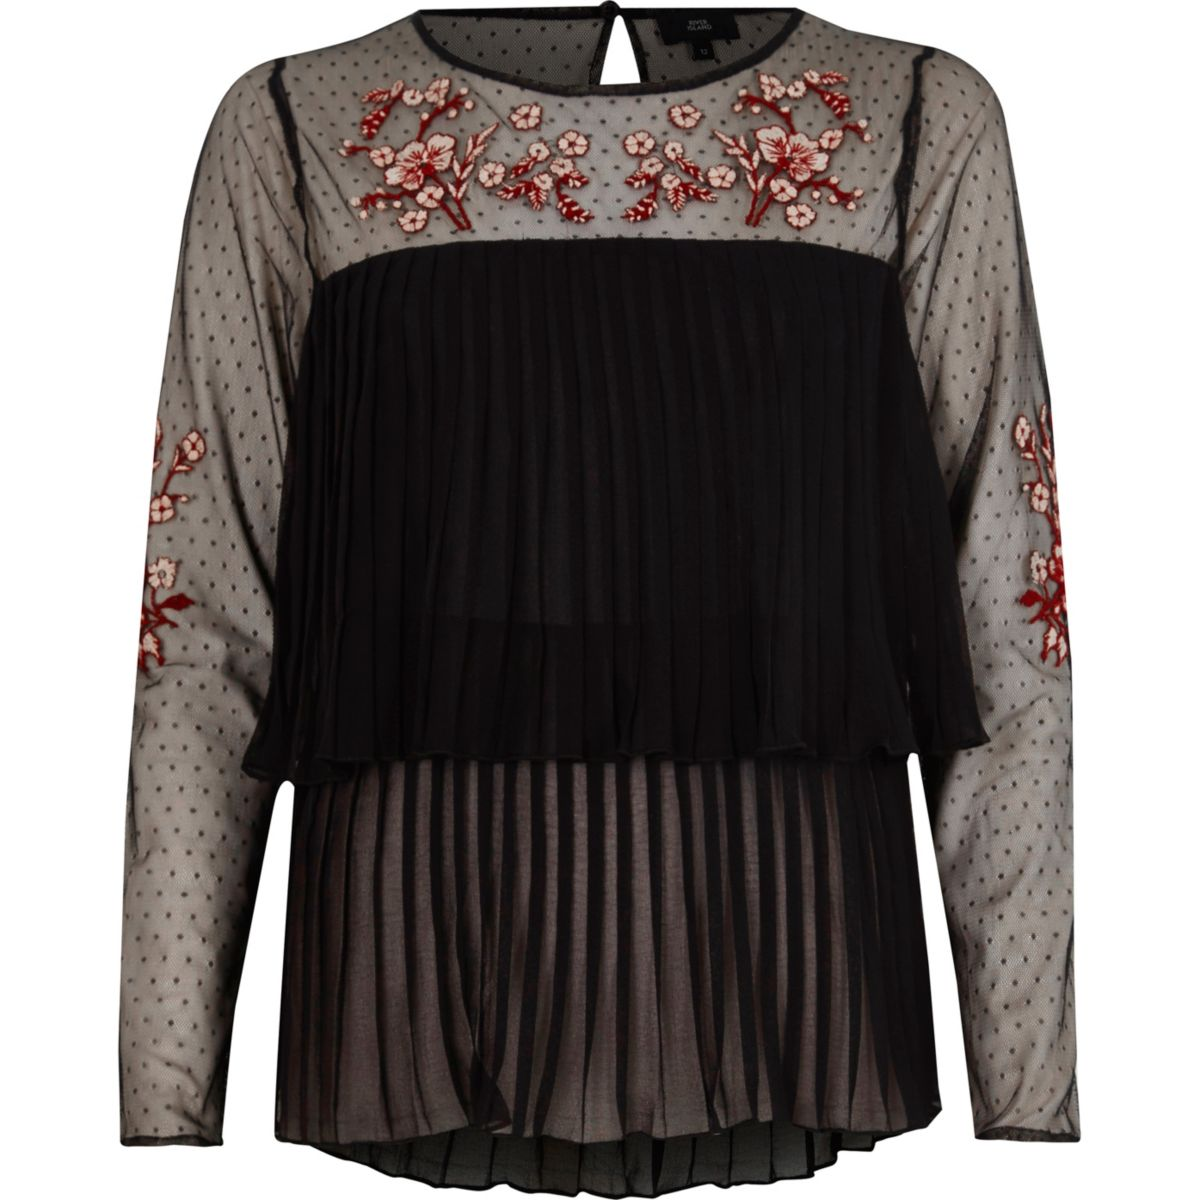 Black pleated floral embroidered mesh top